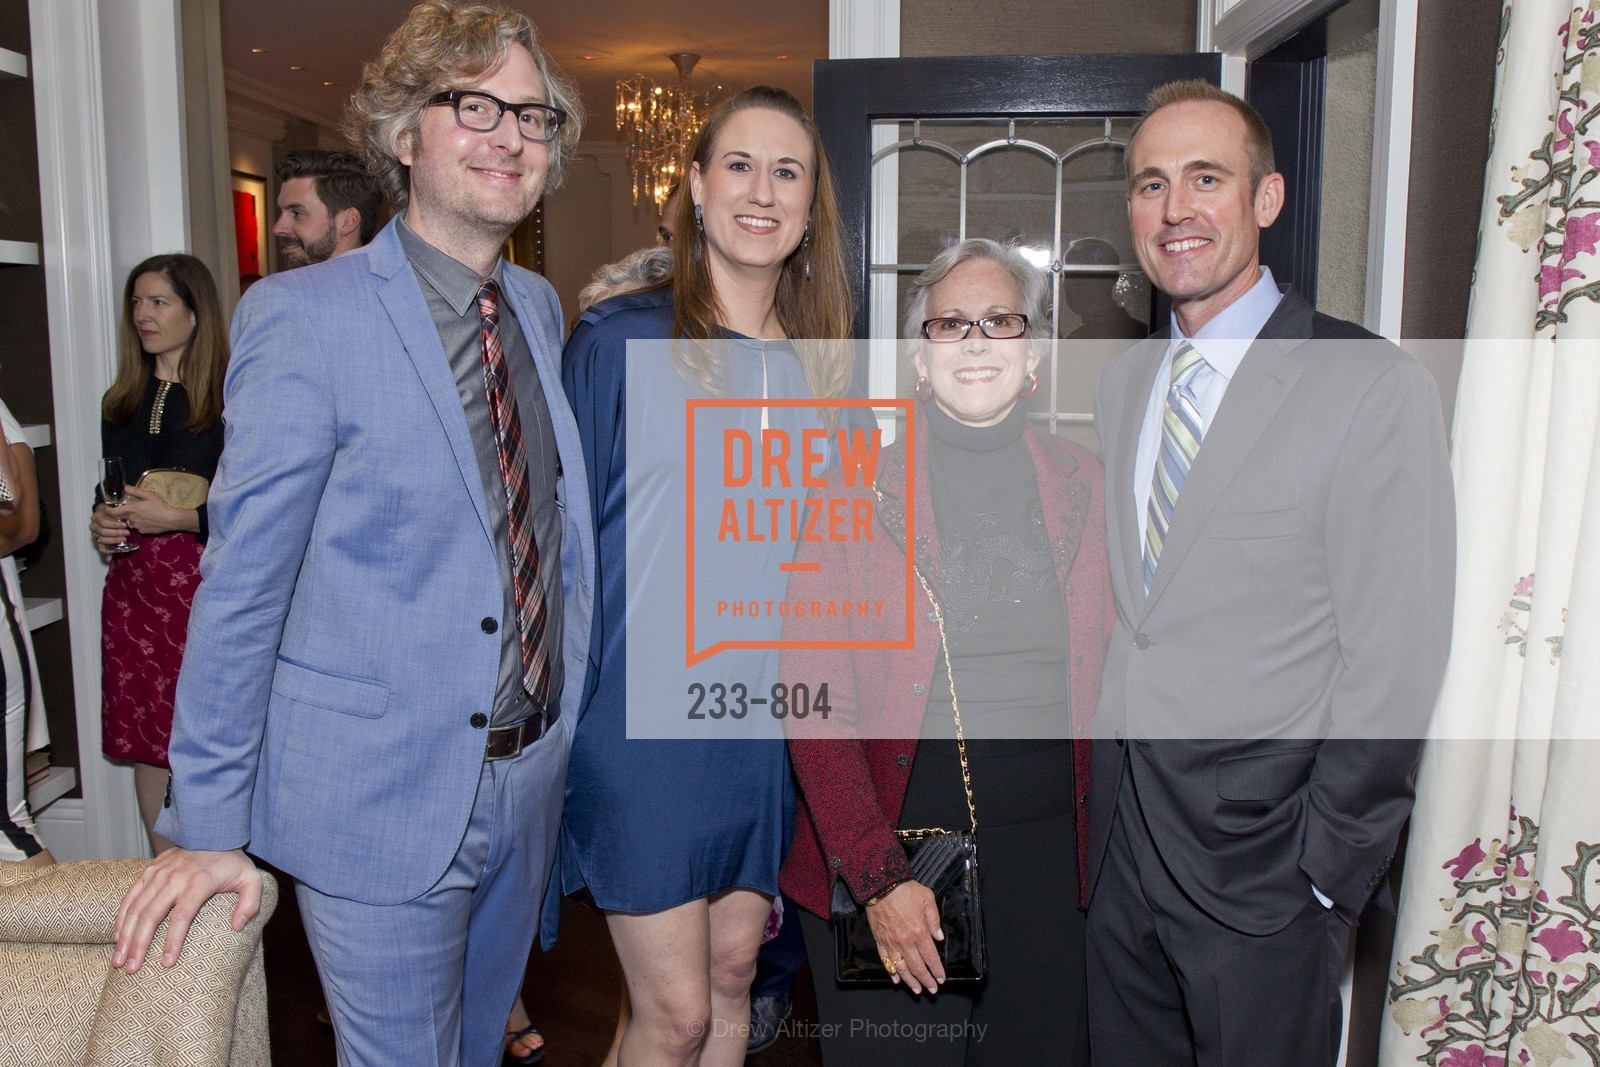 Scott Stedridge, Kelly Hohla, Janet Greenbell, Ron Bond, San Francisco Decorator Showcase Opening Night Party, US, April 25th, 2015,Drew Altizer, Drew Altizer Photography, full-service agency, private events, San Francisco photographer, photographer california